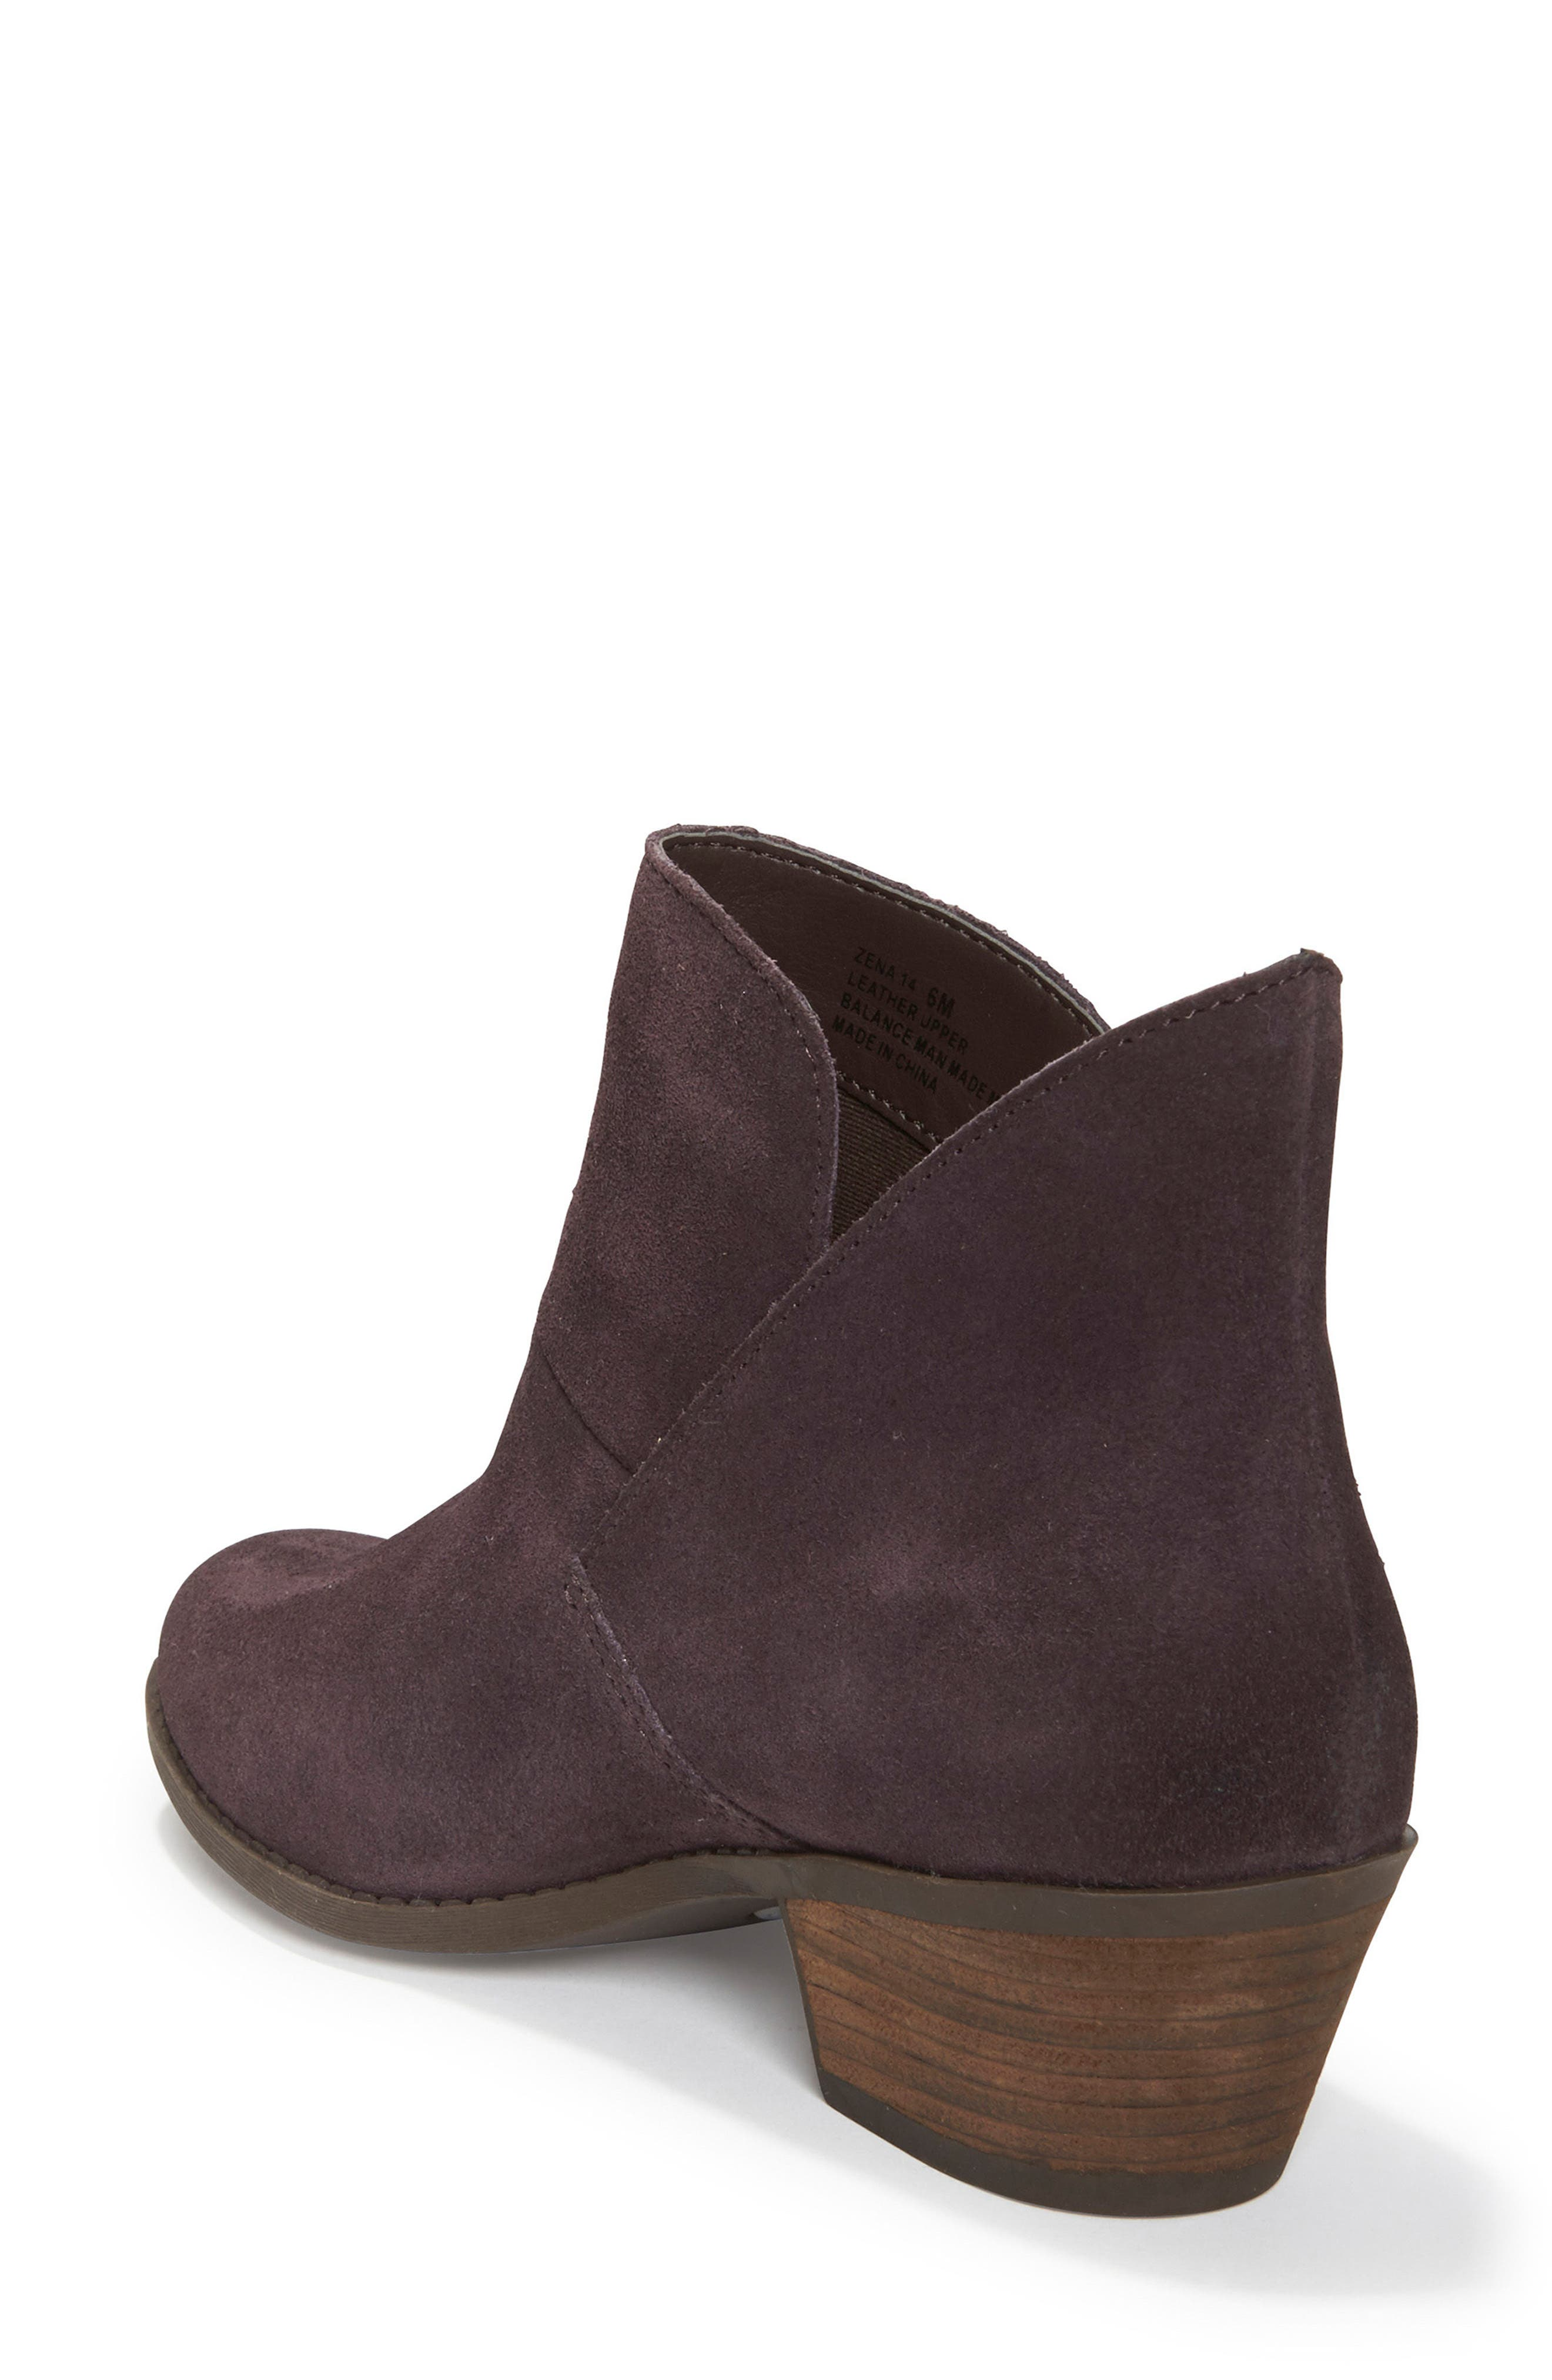 Zena Ankle Boot,                             Alternate thumbnail 2, color,                             Dark Ruby Suede